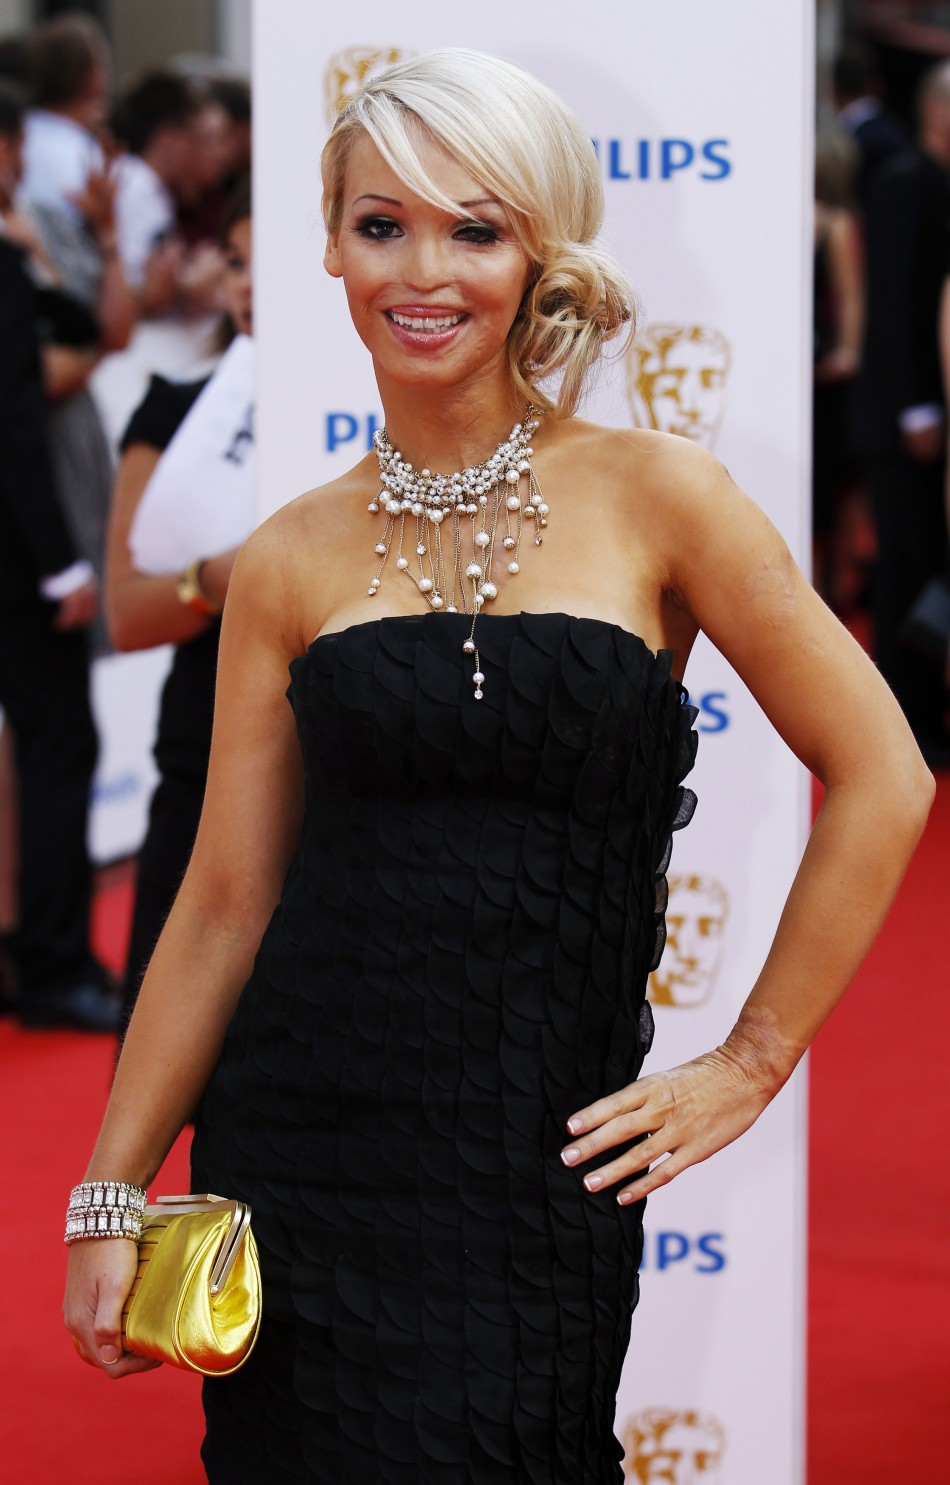 Quot The Girl Who Was Saved Quot Katie Piper Gets Sight Back